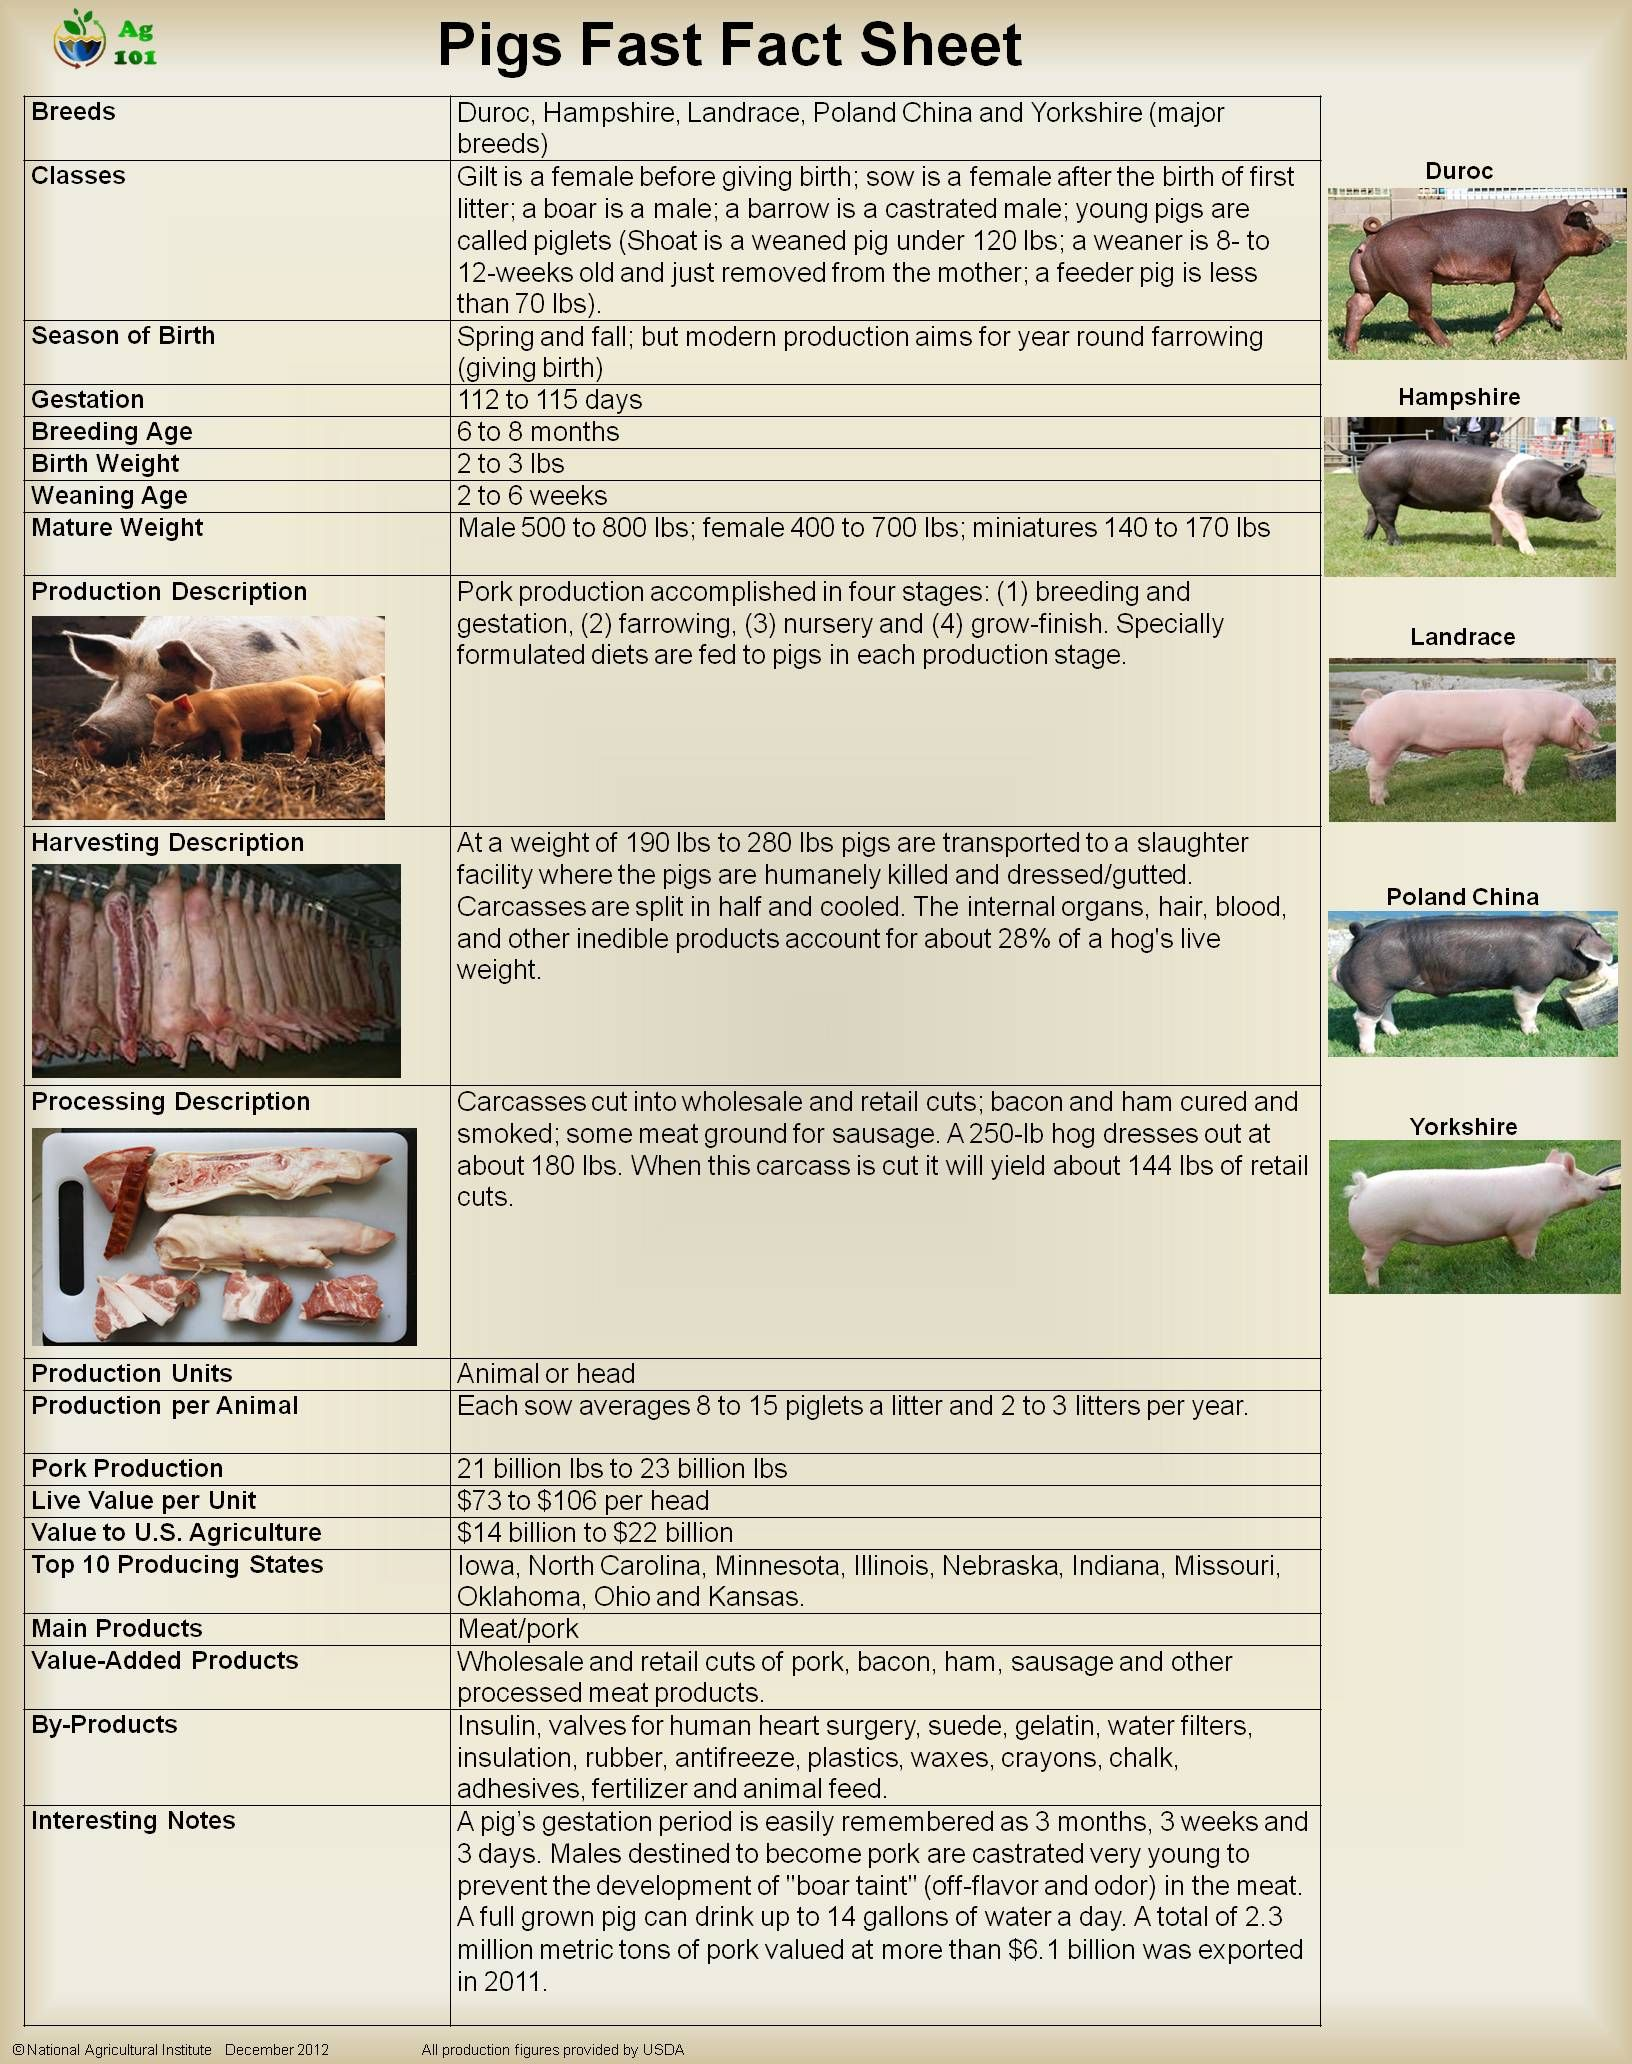 Fast Facts About Pigs